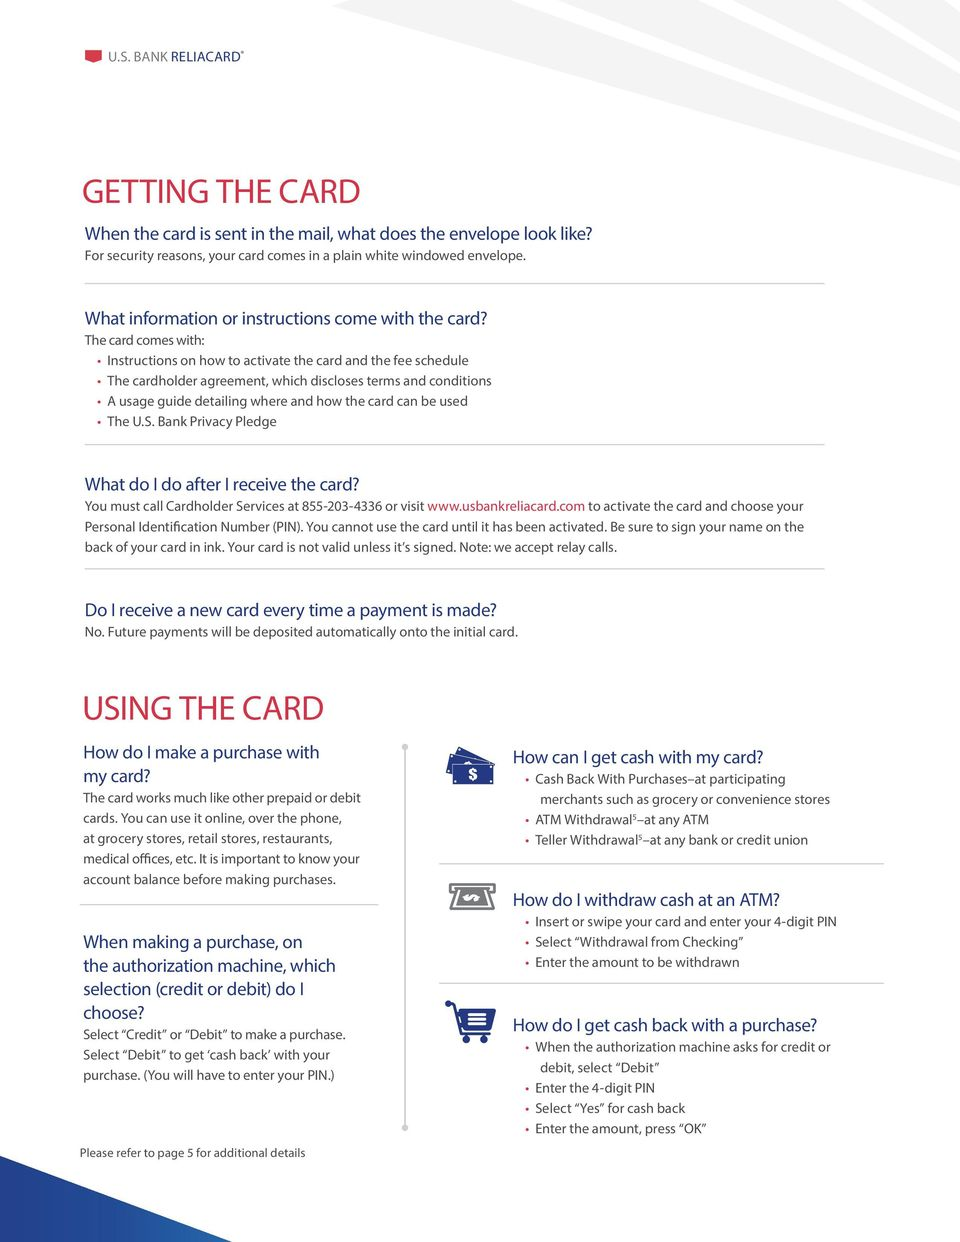 ReliaCard THE RELIACARD FREQUENTLY ASKED QUESTIONS - PDF